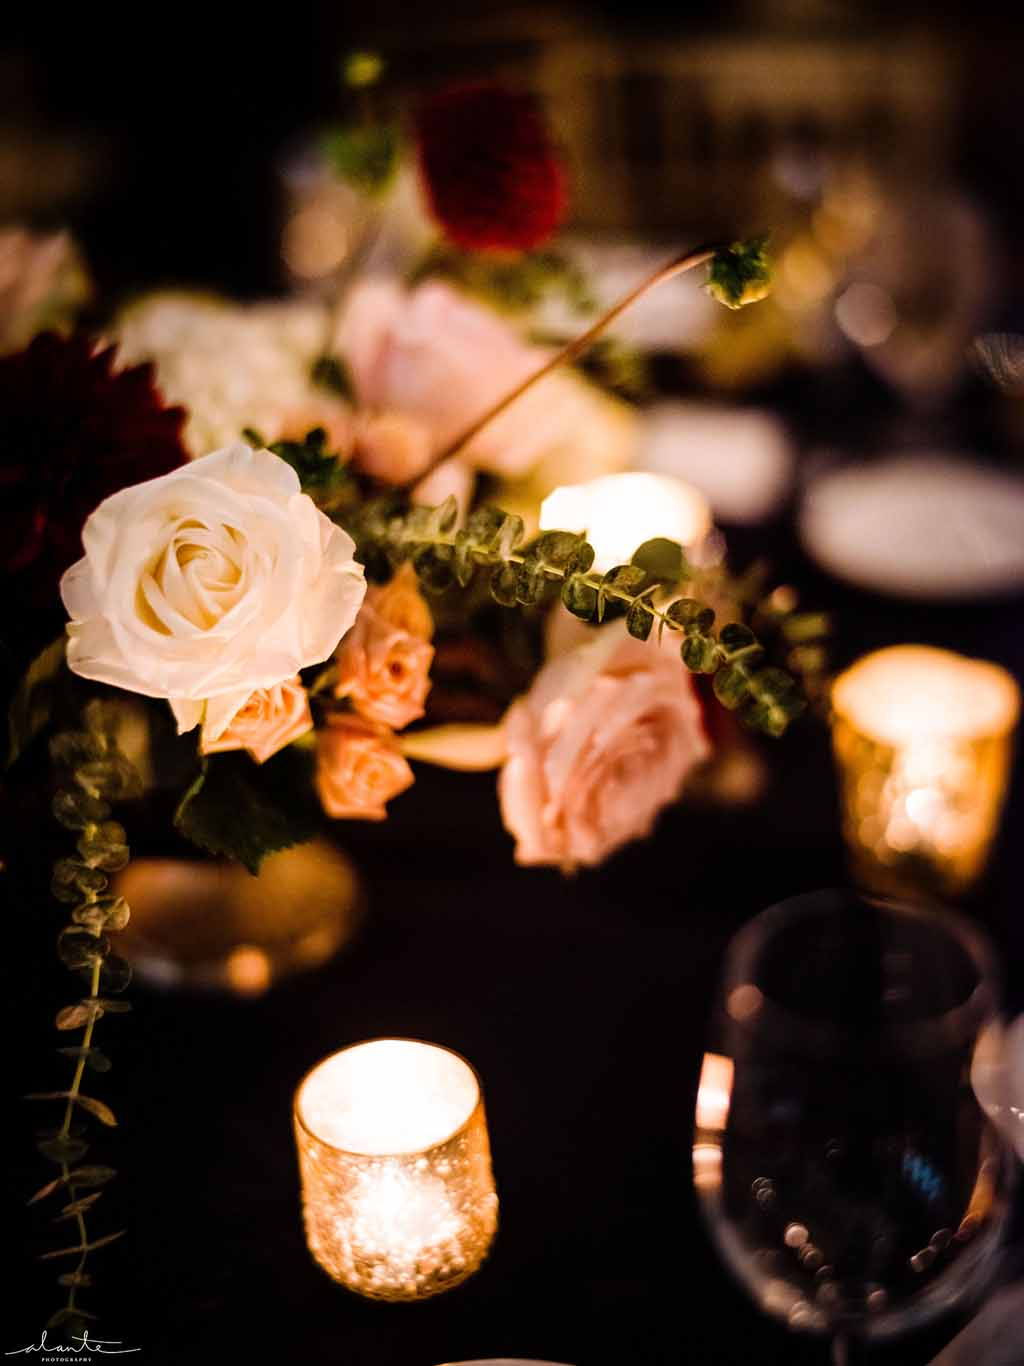 A centerpiece by candlelight